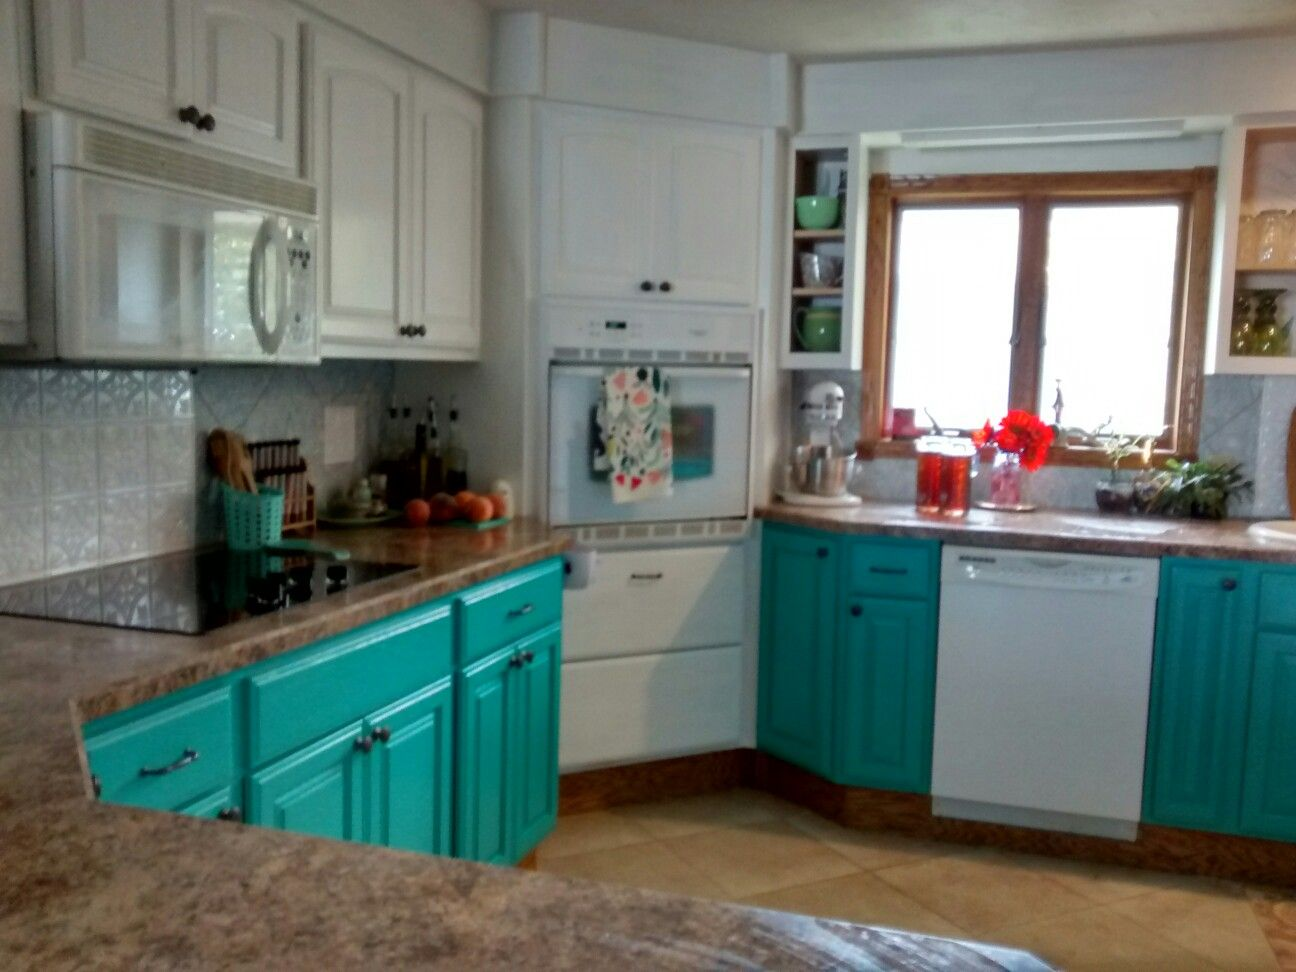 General Finishes Milk Paint Patina Green And Snow White Dreamy To Paint With Sealed With Refinishing Cabinets General Finishes Milk Paint Kitchen Cabinets